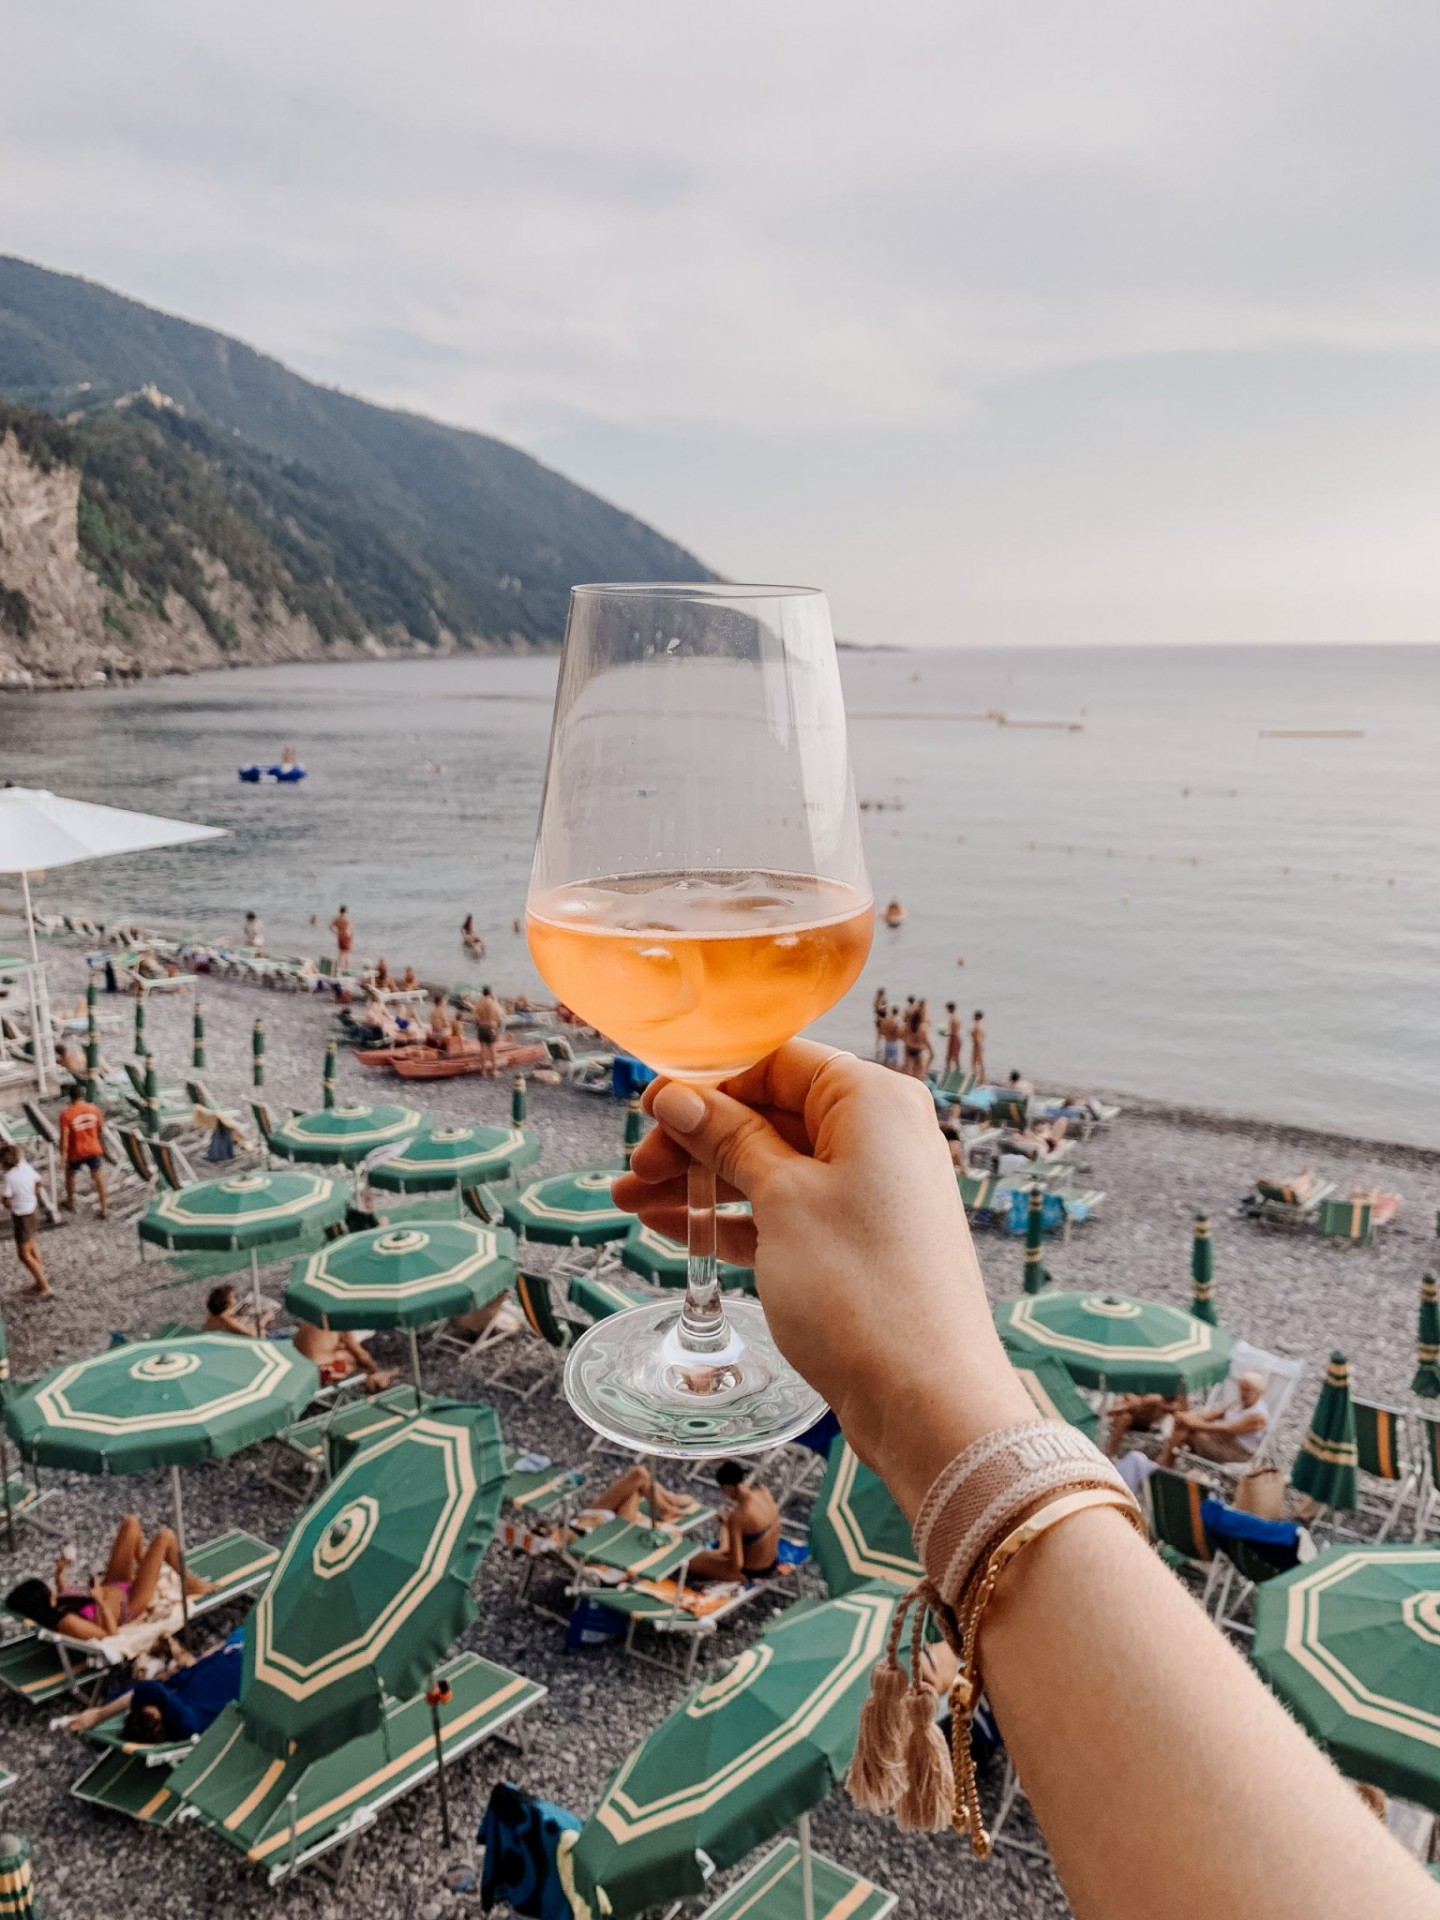 Lifestyle blogger Mollie Moore shares a Portofino Travel Guide | Travel Guide: Best Things to do in Portofino Italy by popular international travel blogger, Mollie Moore: image of a woman holding a cocktail.